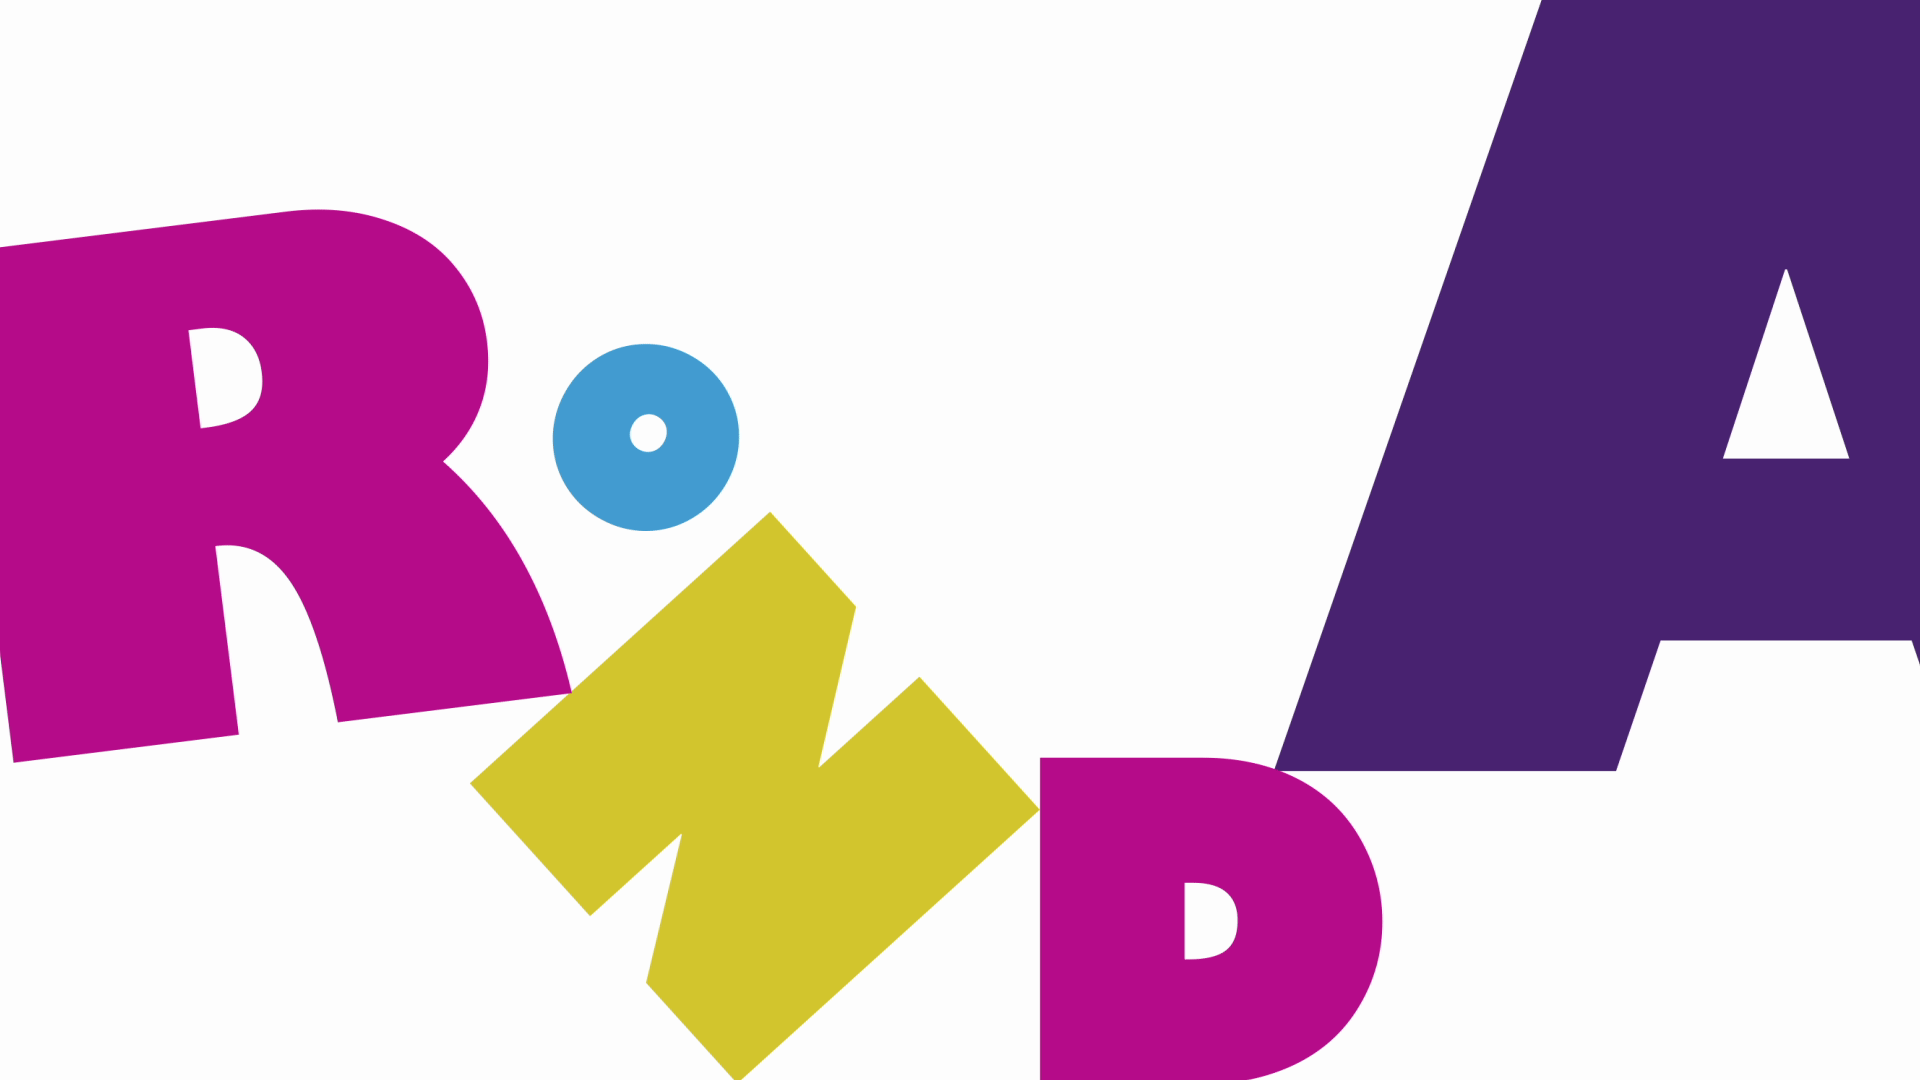 Ronda - Speaker title for a motion graphics conference